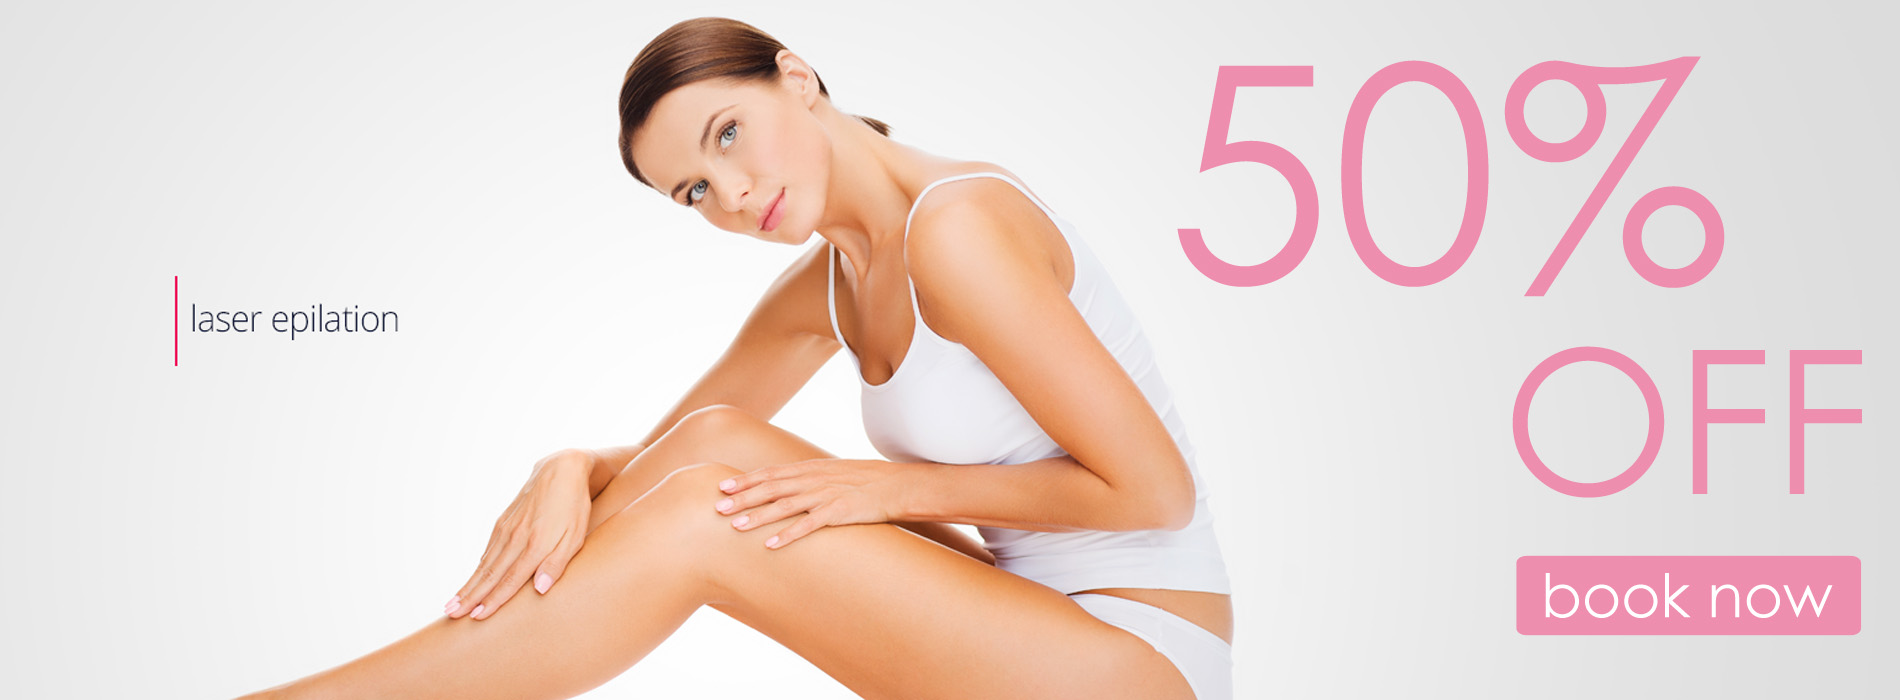 Laser hair removal 50 % off